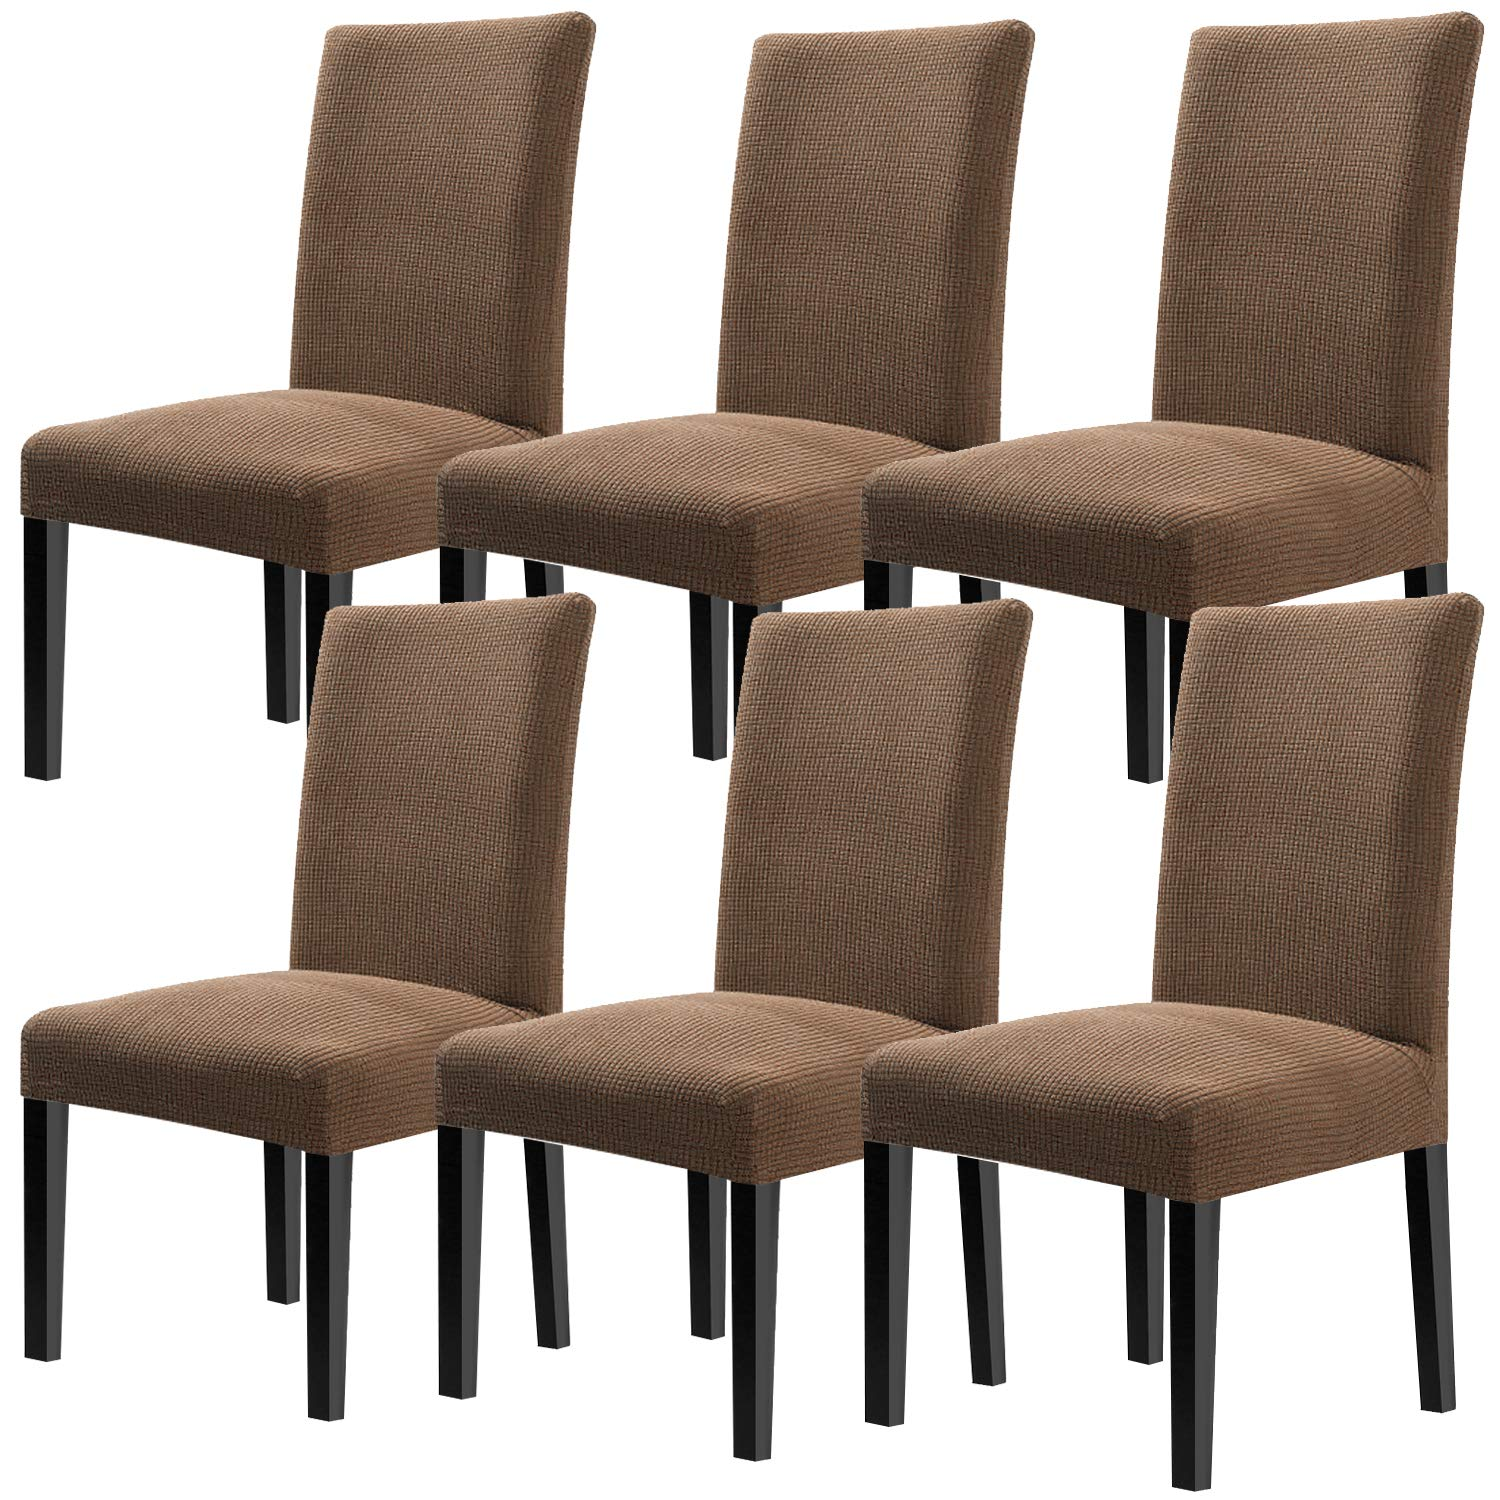 YISUN Modern Dining Chair Covers,Super Fit Stretch High Chair Cover Removable Washable Protector Cover for Hotel,Dining Room,Ceremony,Banquet Wedding Party Set of 6 Chair Protective Covers by YISUN